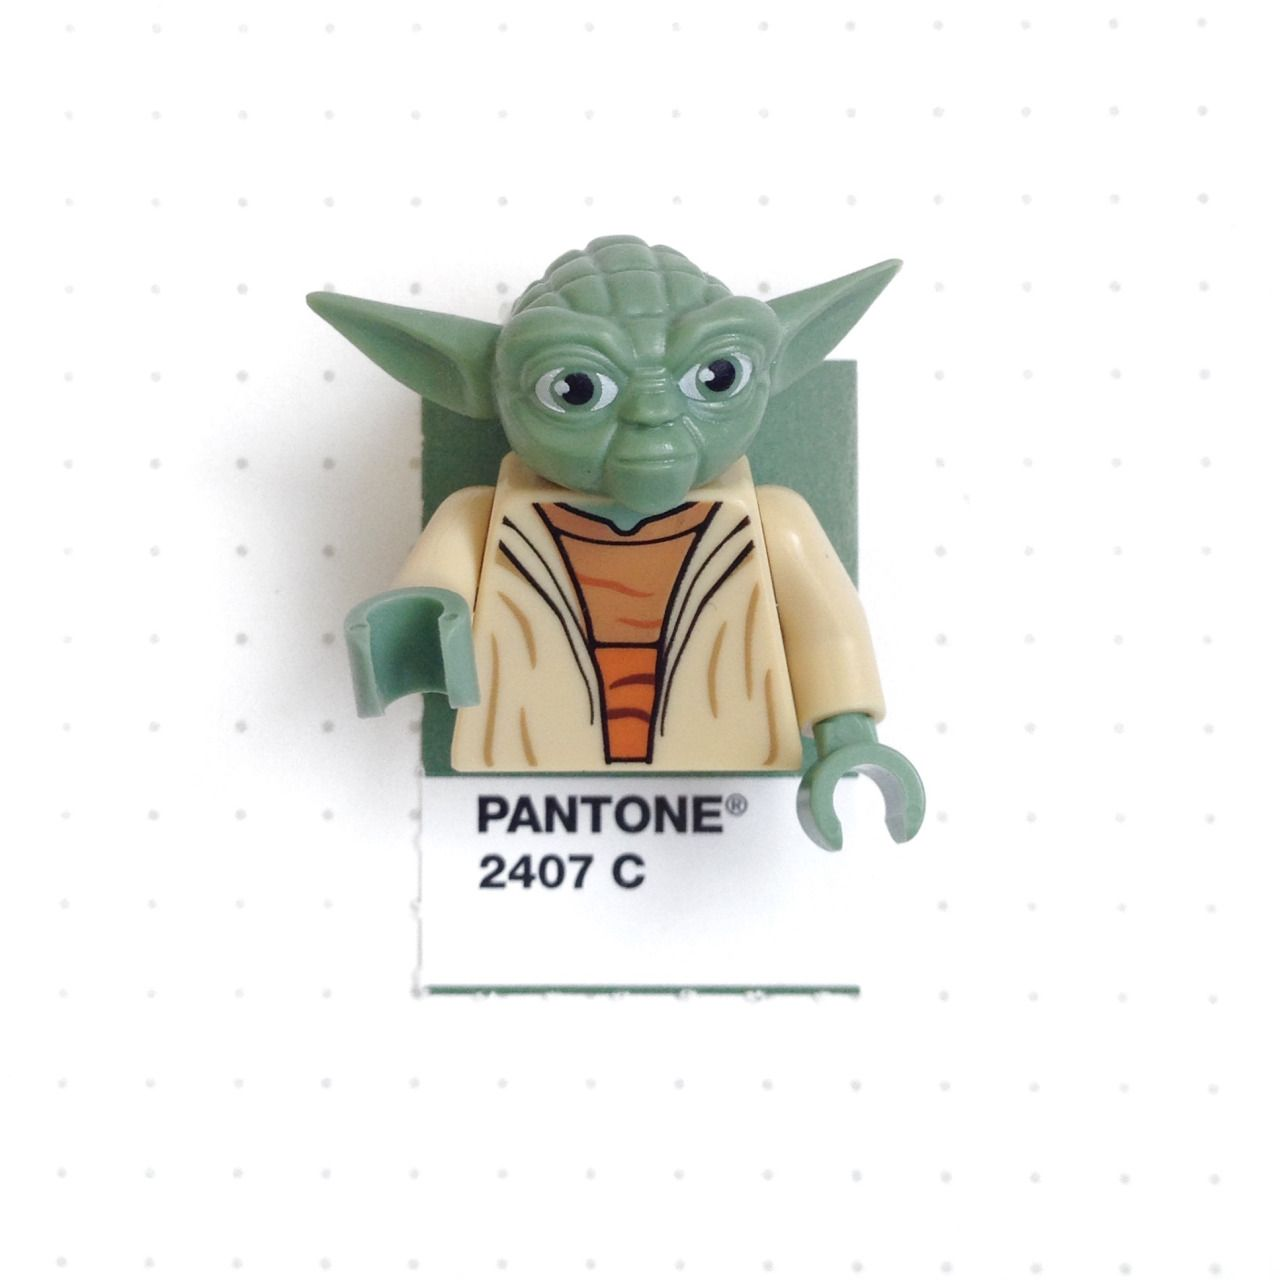 "Pantone 2407 color match.  Lego Yoda.  ""Do. Or do not. There is no try."""